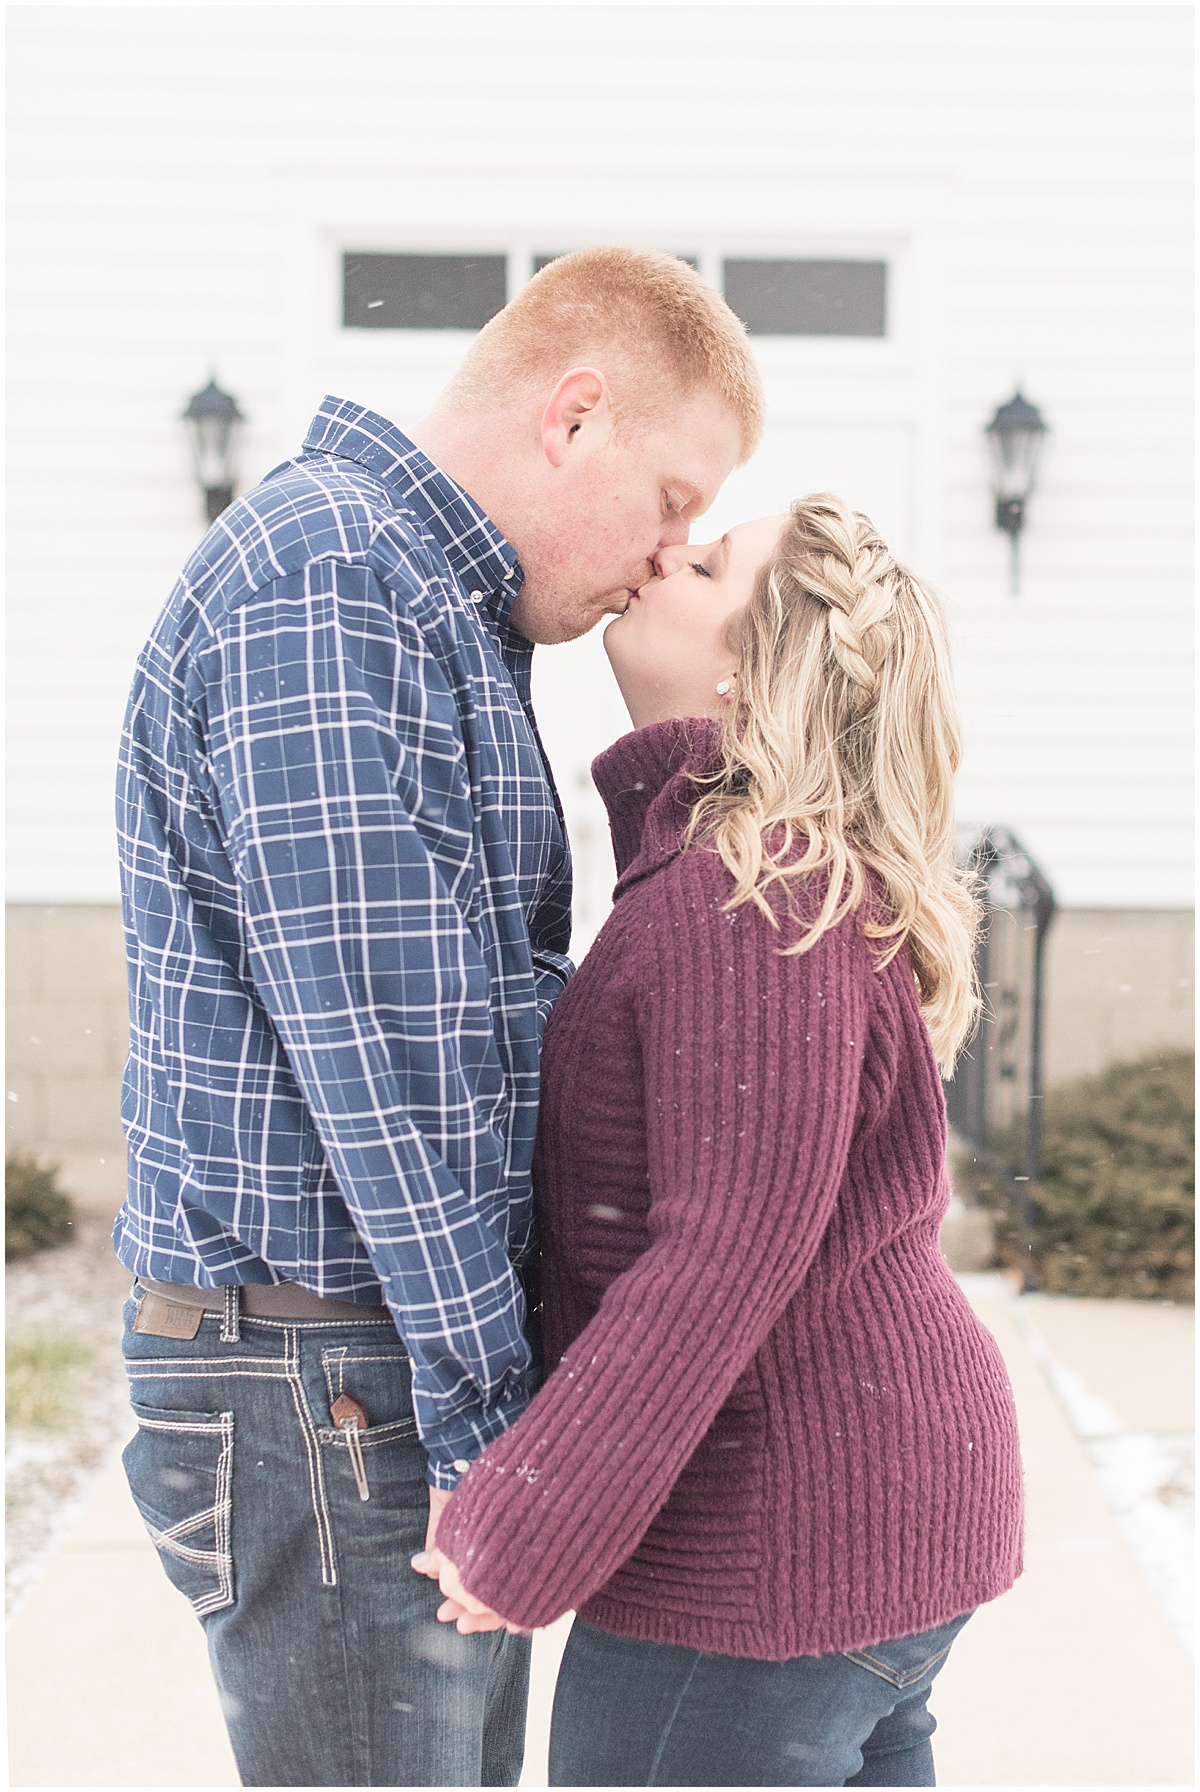 Ryan & Katie - Country Engagement Photos in Otterbein Indiana28.jpg